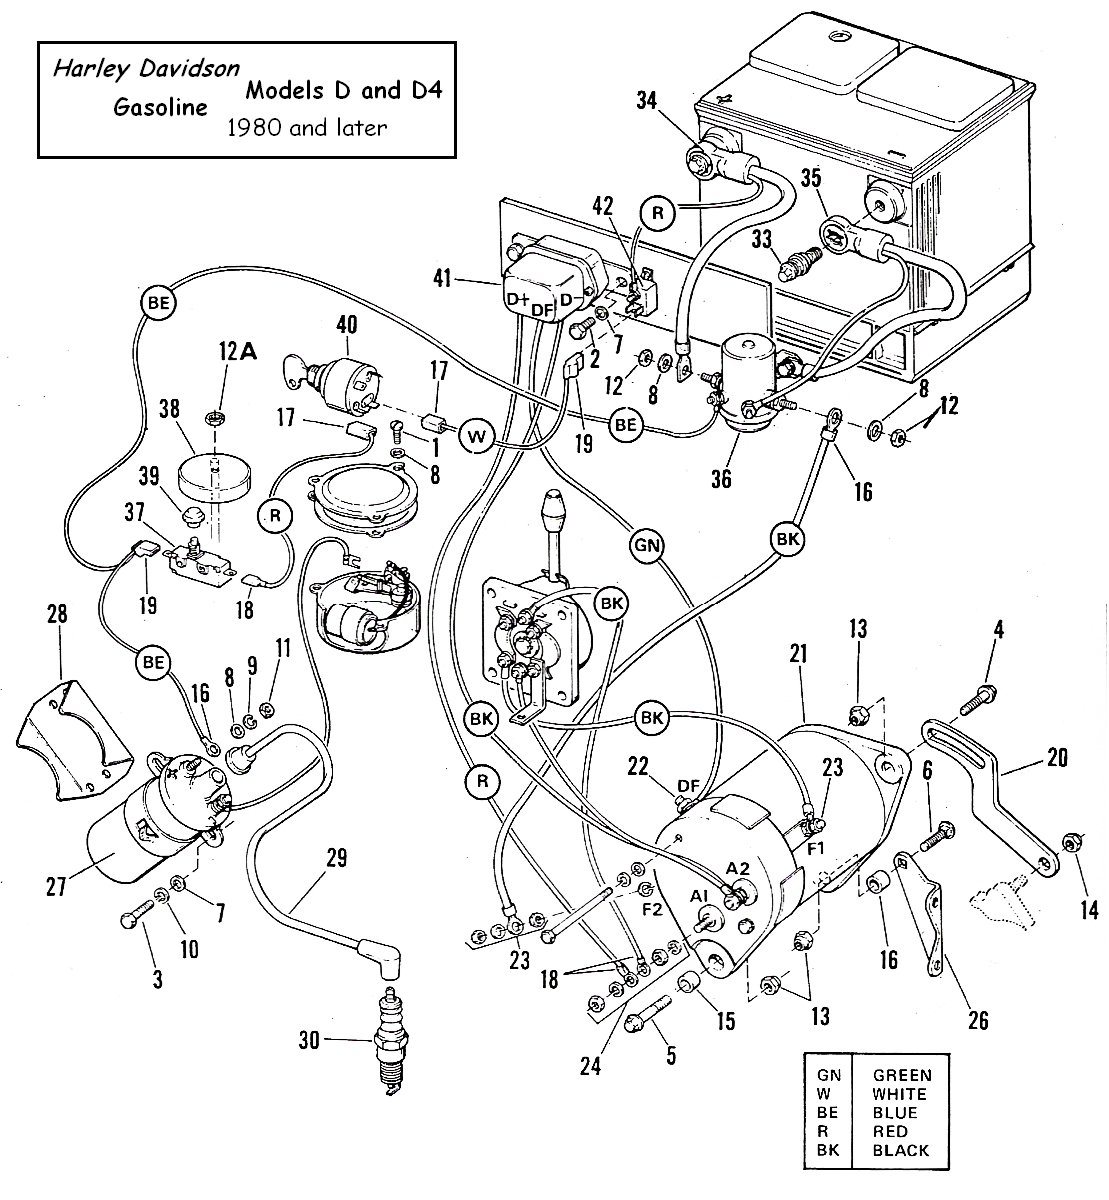 Harley Davidson Engine Wiring Diagram